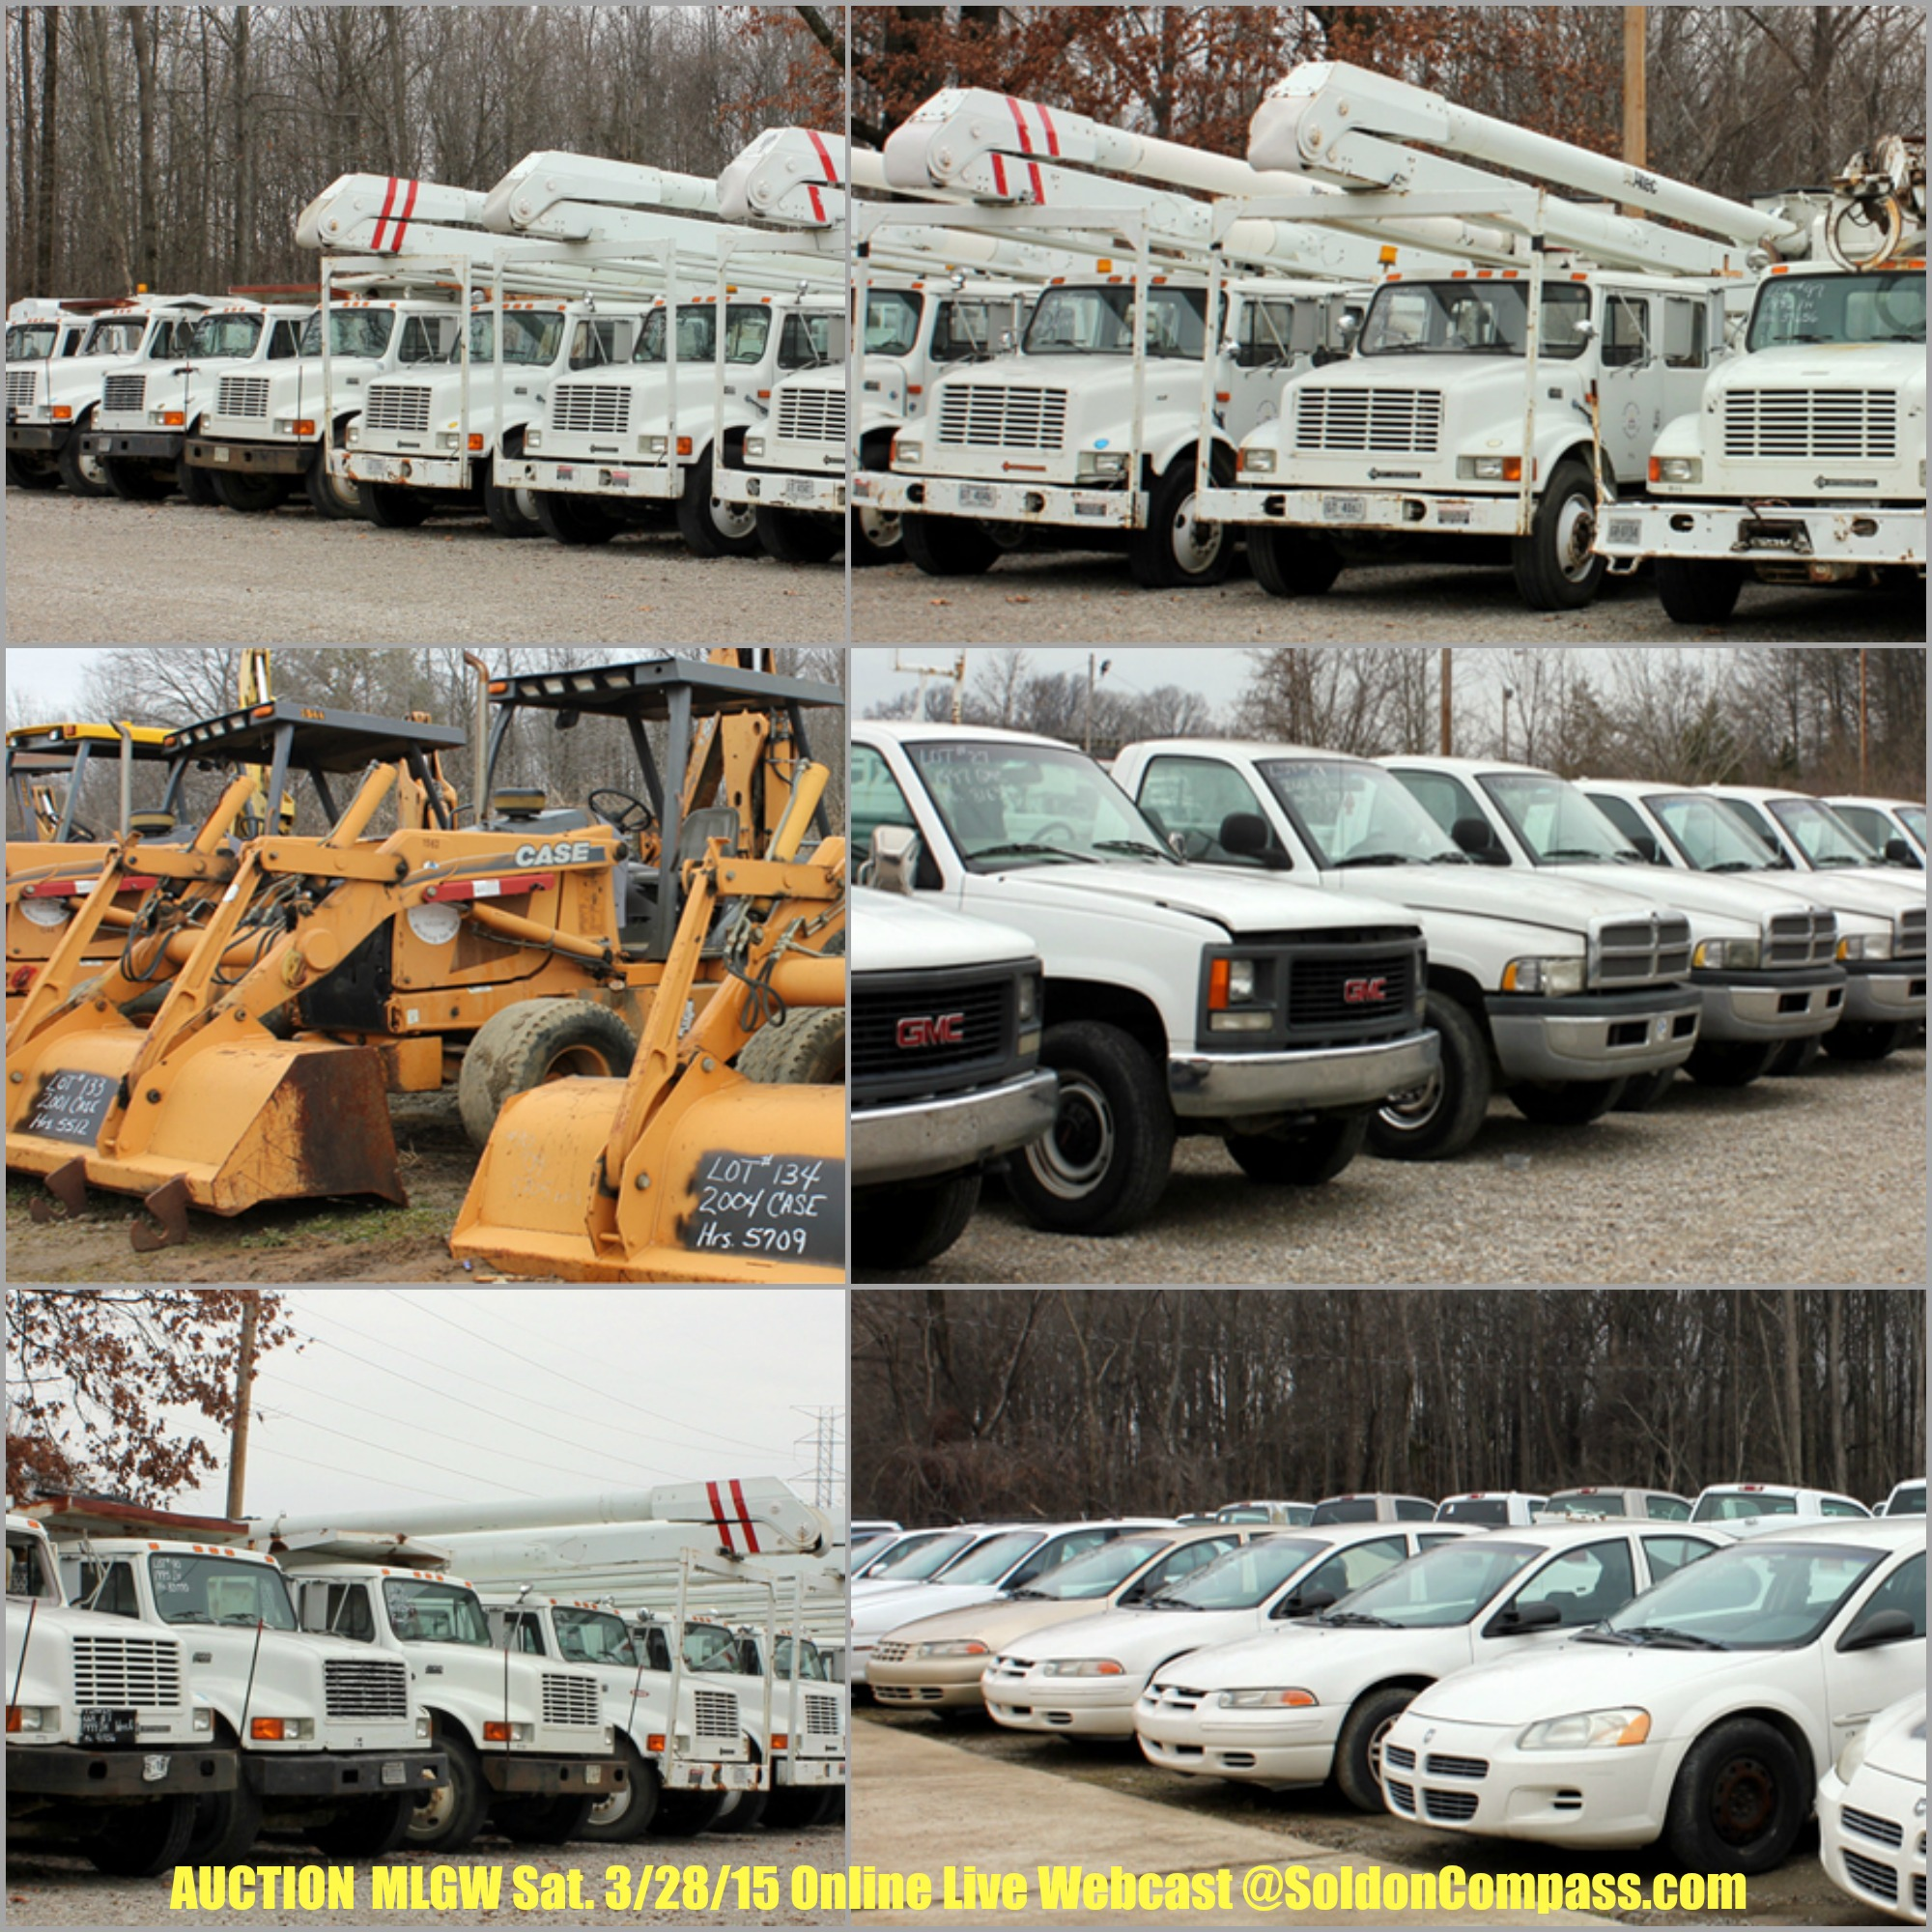 AUCTION | MLGW | Memphis Light Gas and Water Equipment & Vehicles | SoldonCompass.com